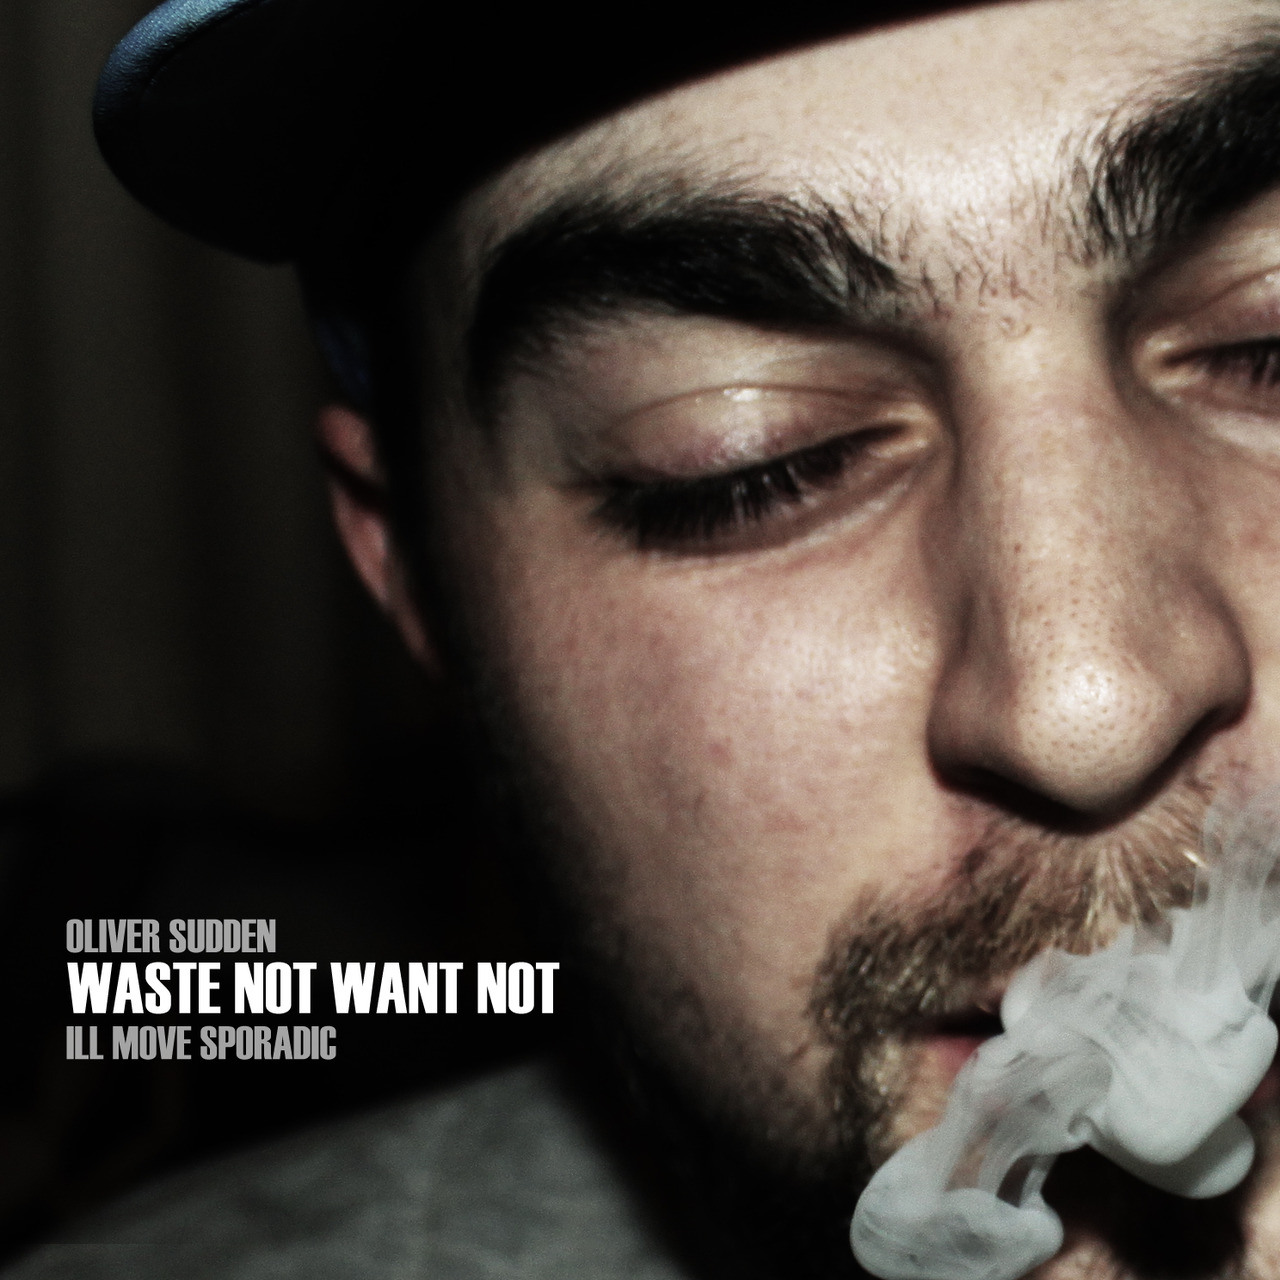 Waste Not Want Not We've been inundated here at HCHQ with a load of new releases!  A stand-out for us would be yet another strong album from Ill Move Sporadic, this time they've teamed up with Cronx Don Oliver Sudden.  The more notable tracks Underground Kingz and Freshness sit back to back at the center of the arrangement (but they're all heavy!) and the FREE download is also backed up by the inclusion of 9 IMSTrumentals and a Bonus Track!  Go get yours over at Ill Move Sporadic's Bandcamp and be sure to check the video to accompany 'Freshness' ft K9 and Theme HERE.